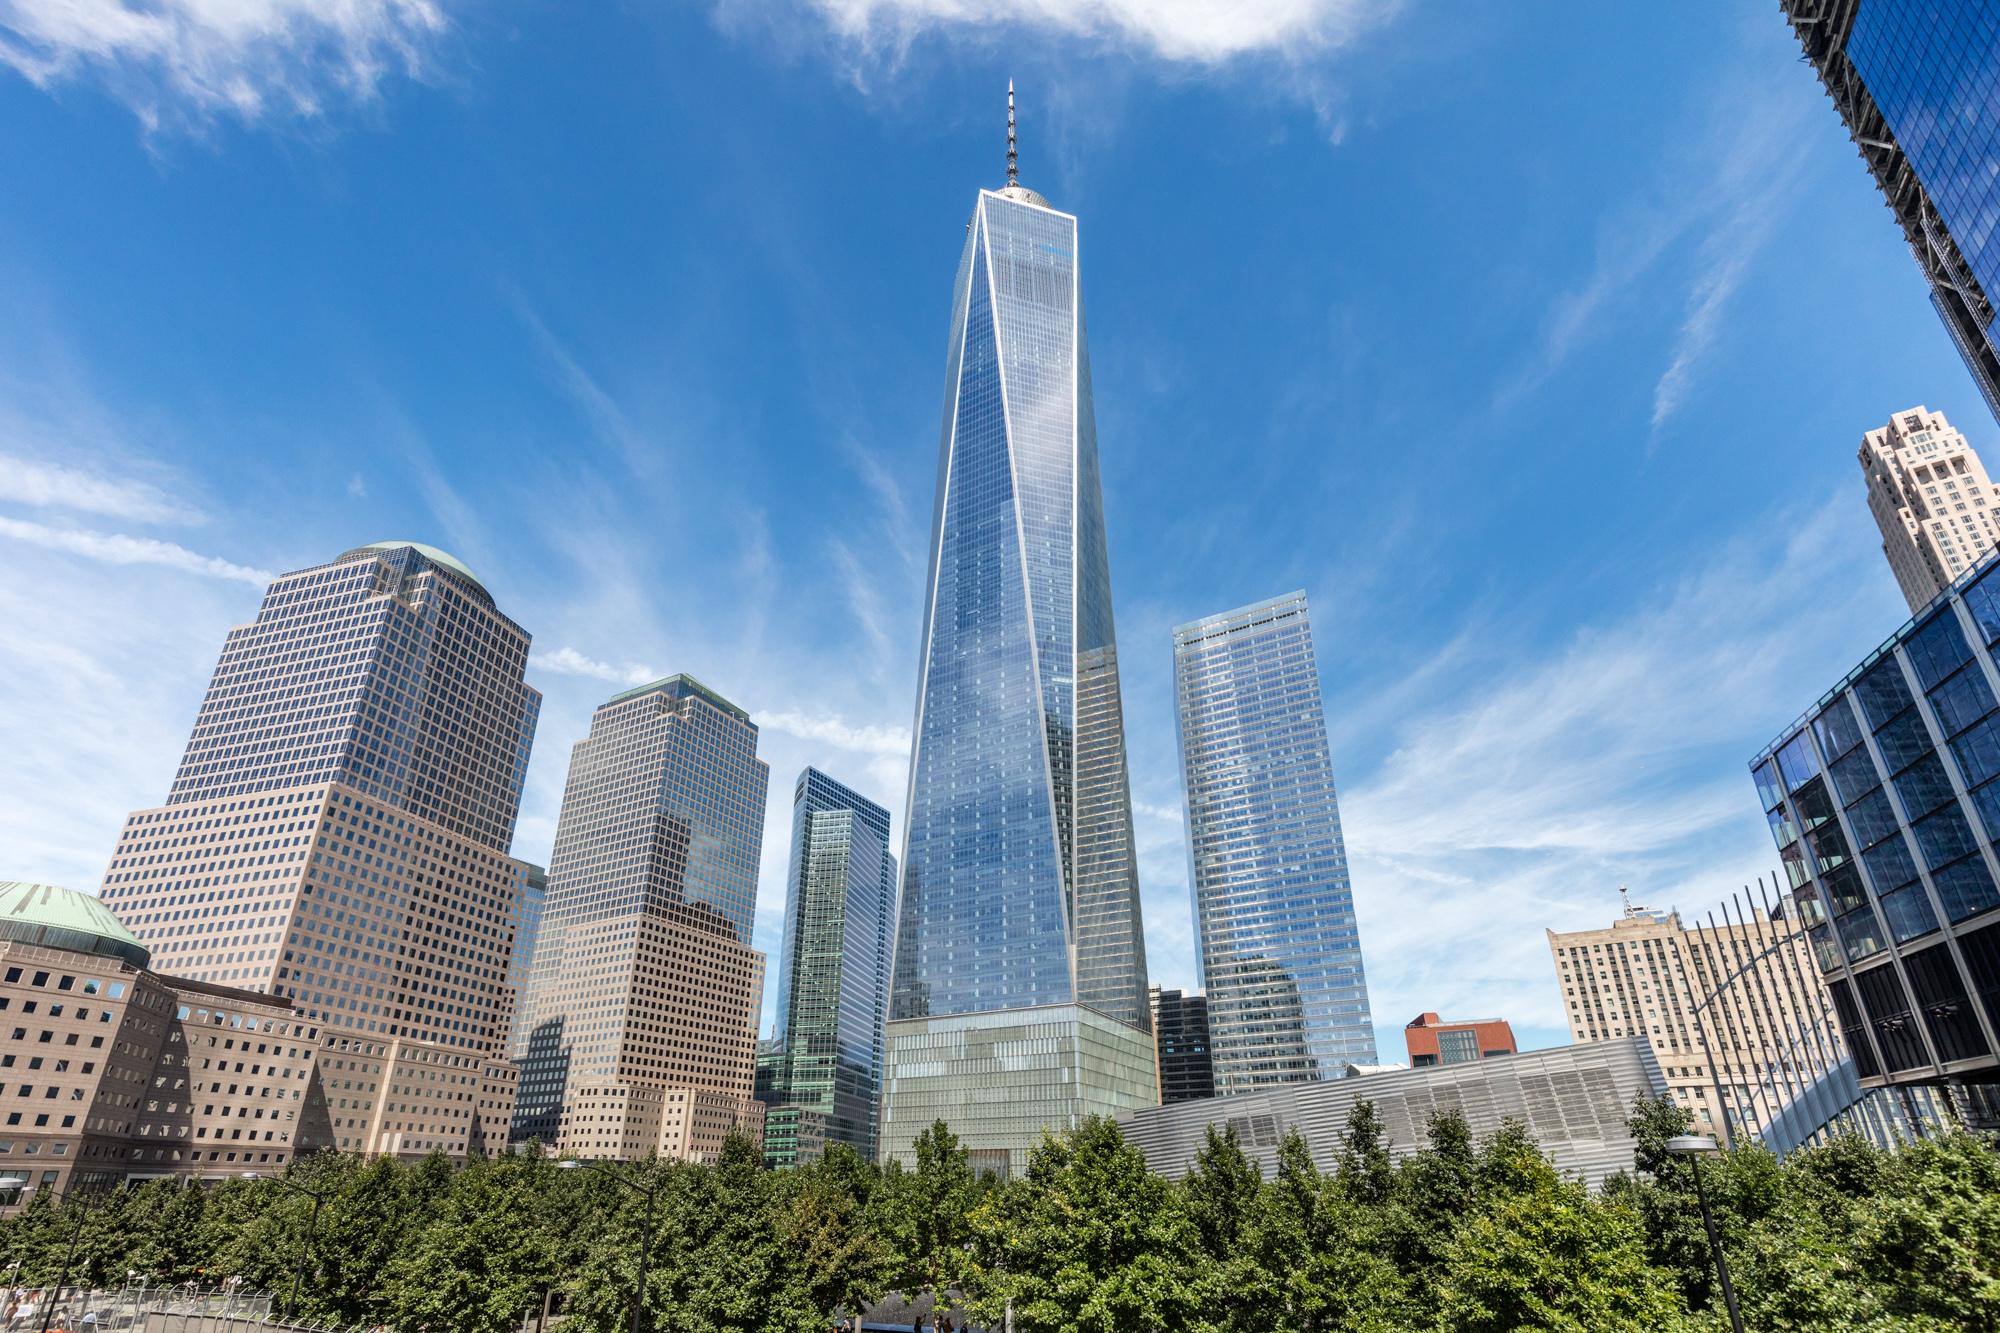 World One Trade Center